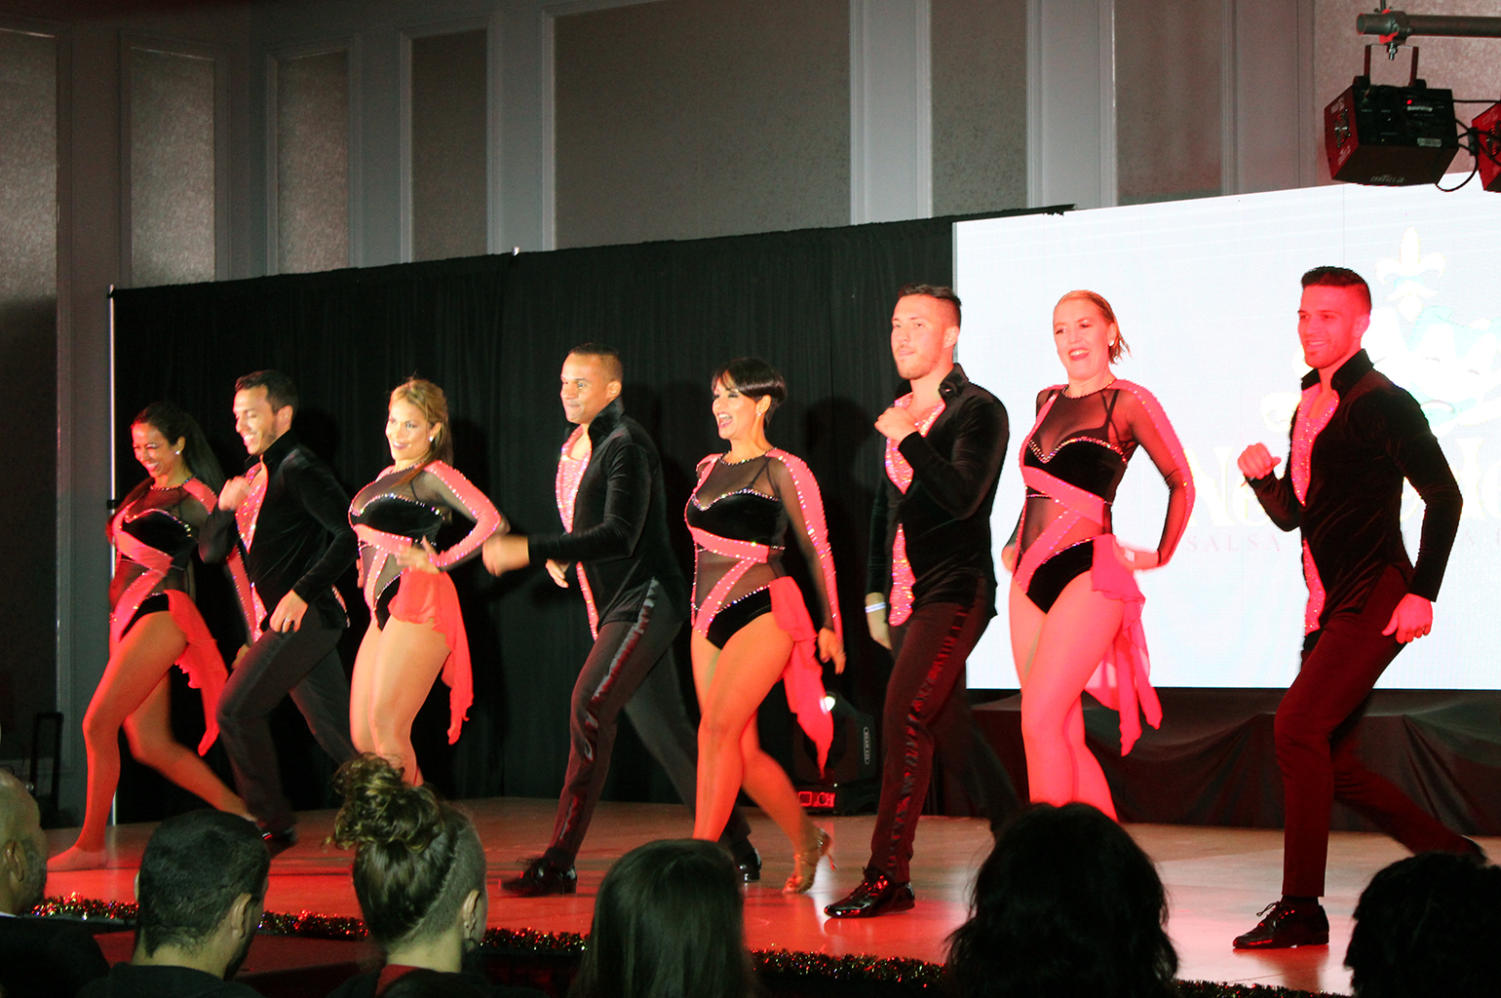 Group Casa Salsa from Fort Lauderdale, Florida performs during the Salsa and Bachata Festival. Latin dancers from around the country performed and lead dance workshops at the festival.